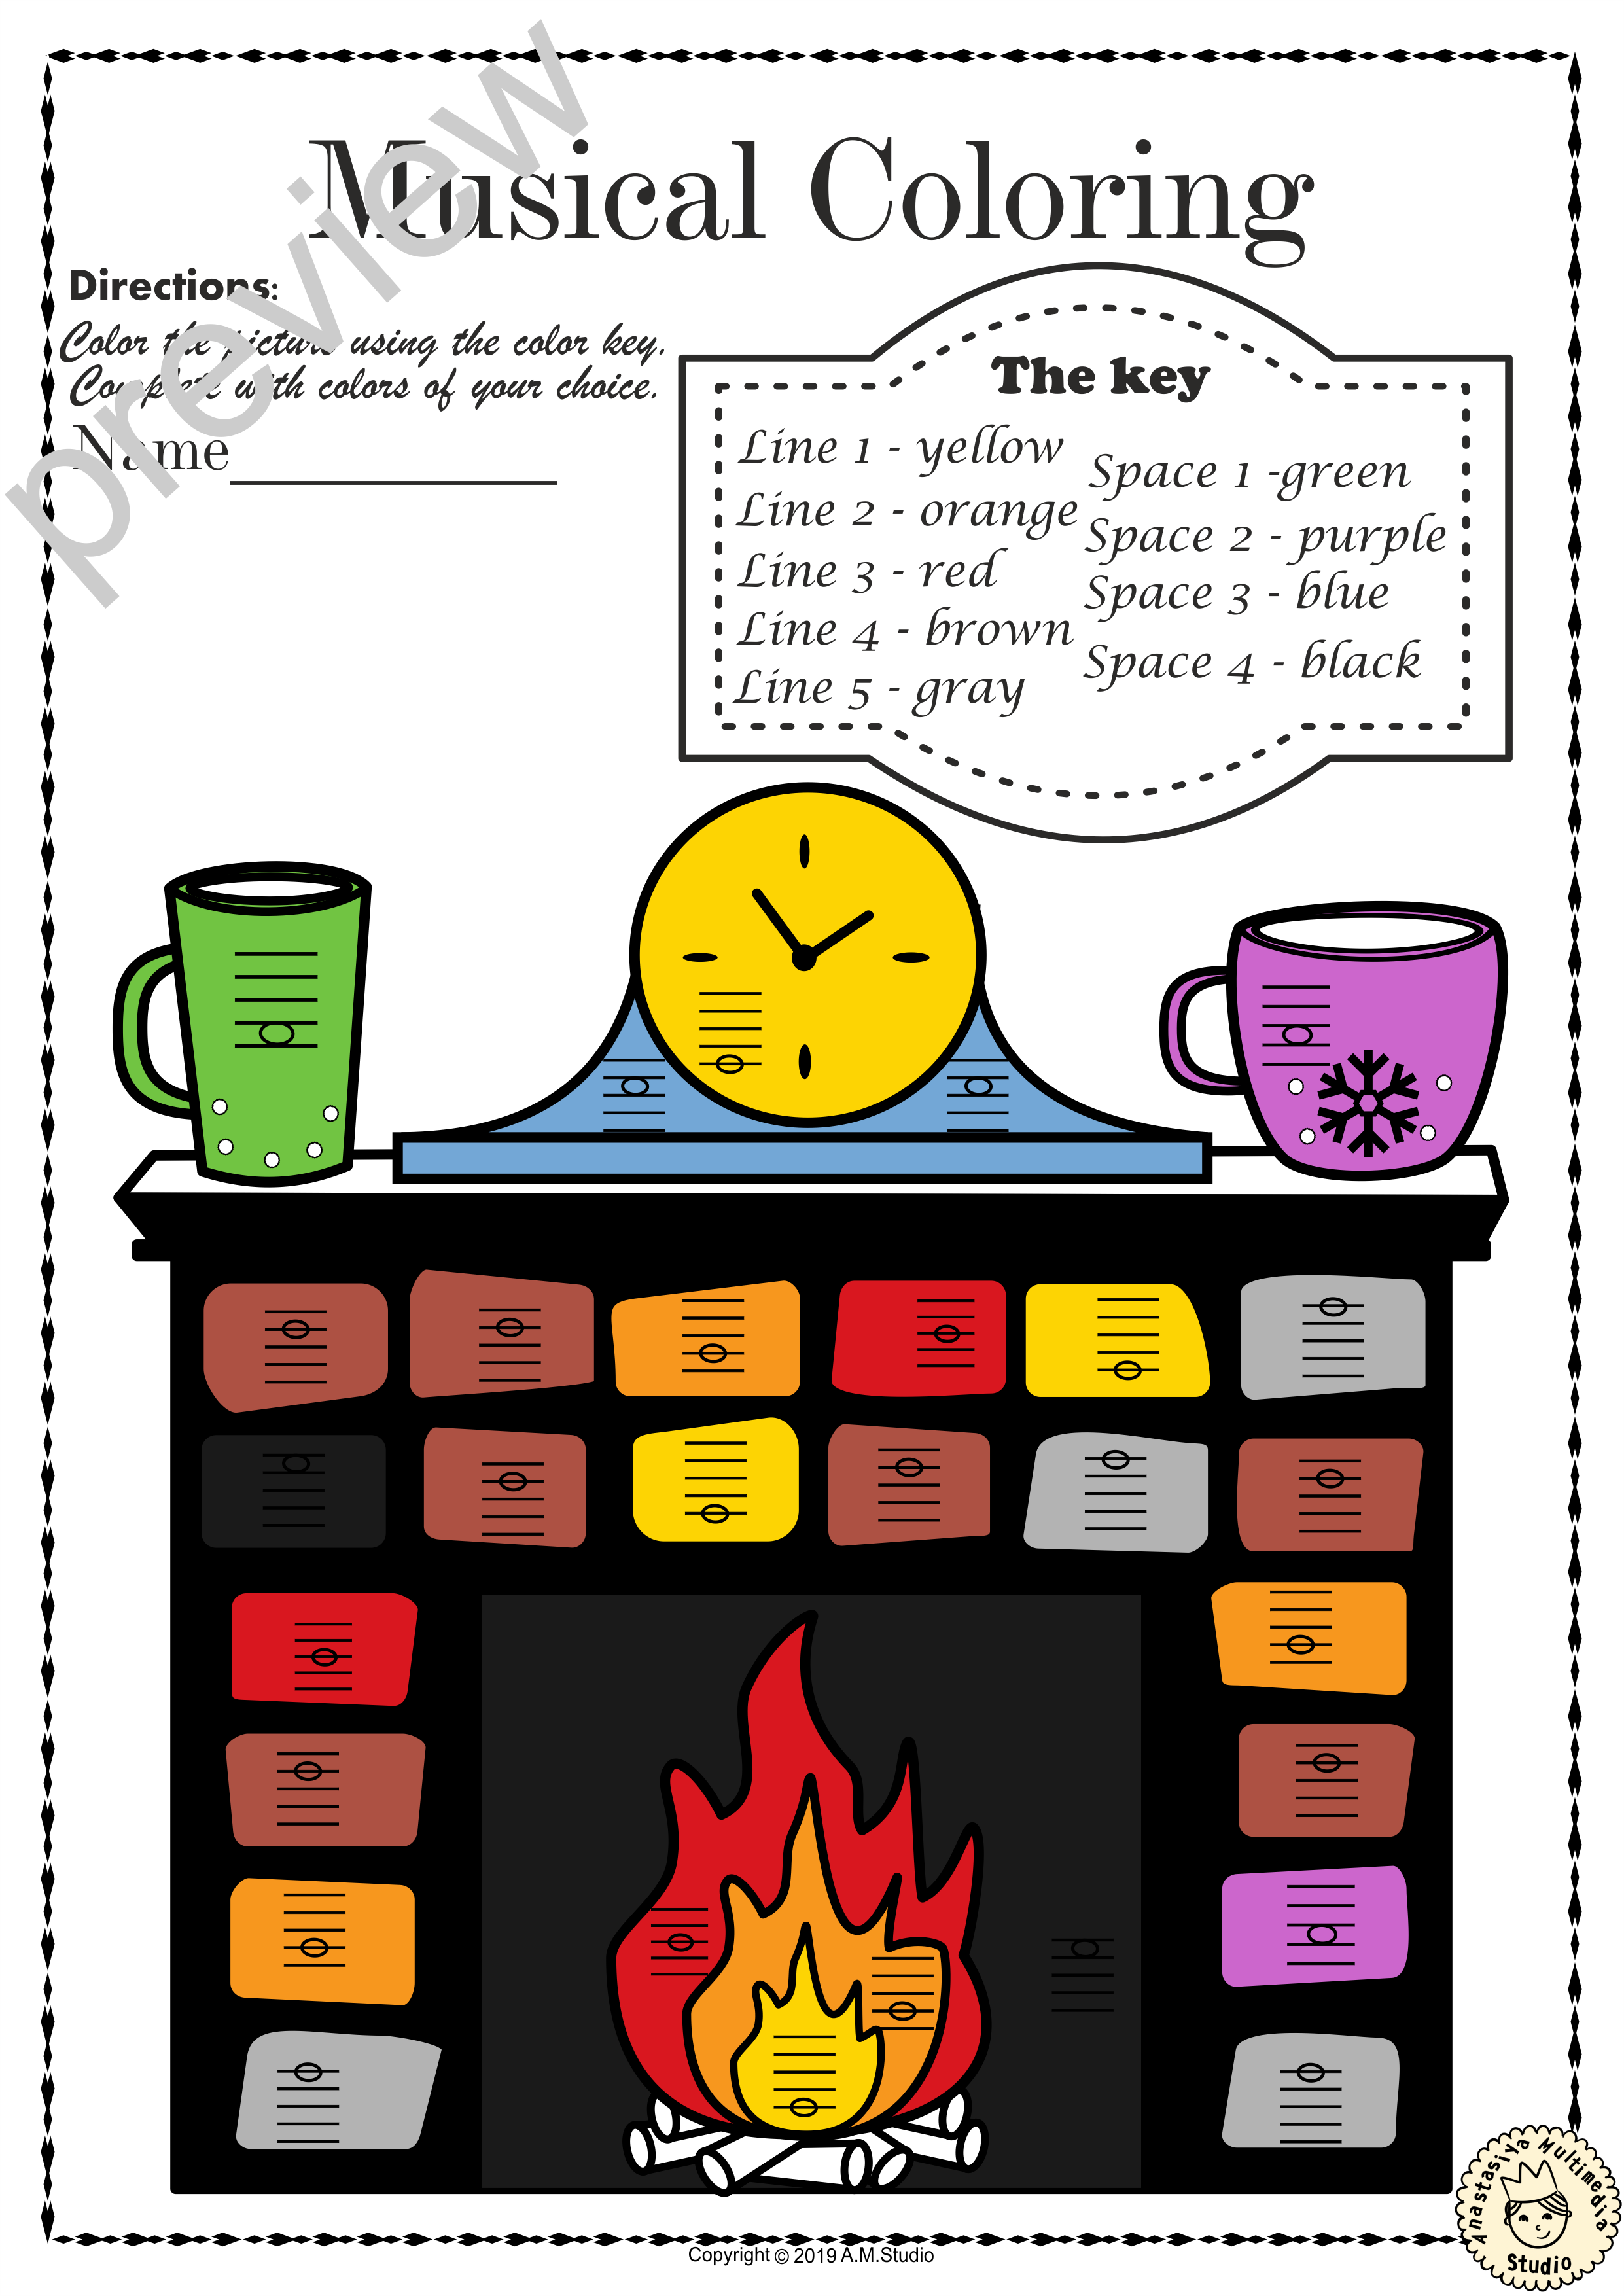 Musical Coloring Pages For Winter Lines And Spaces With